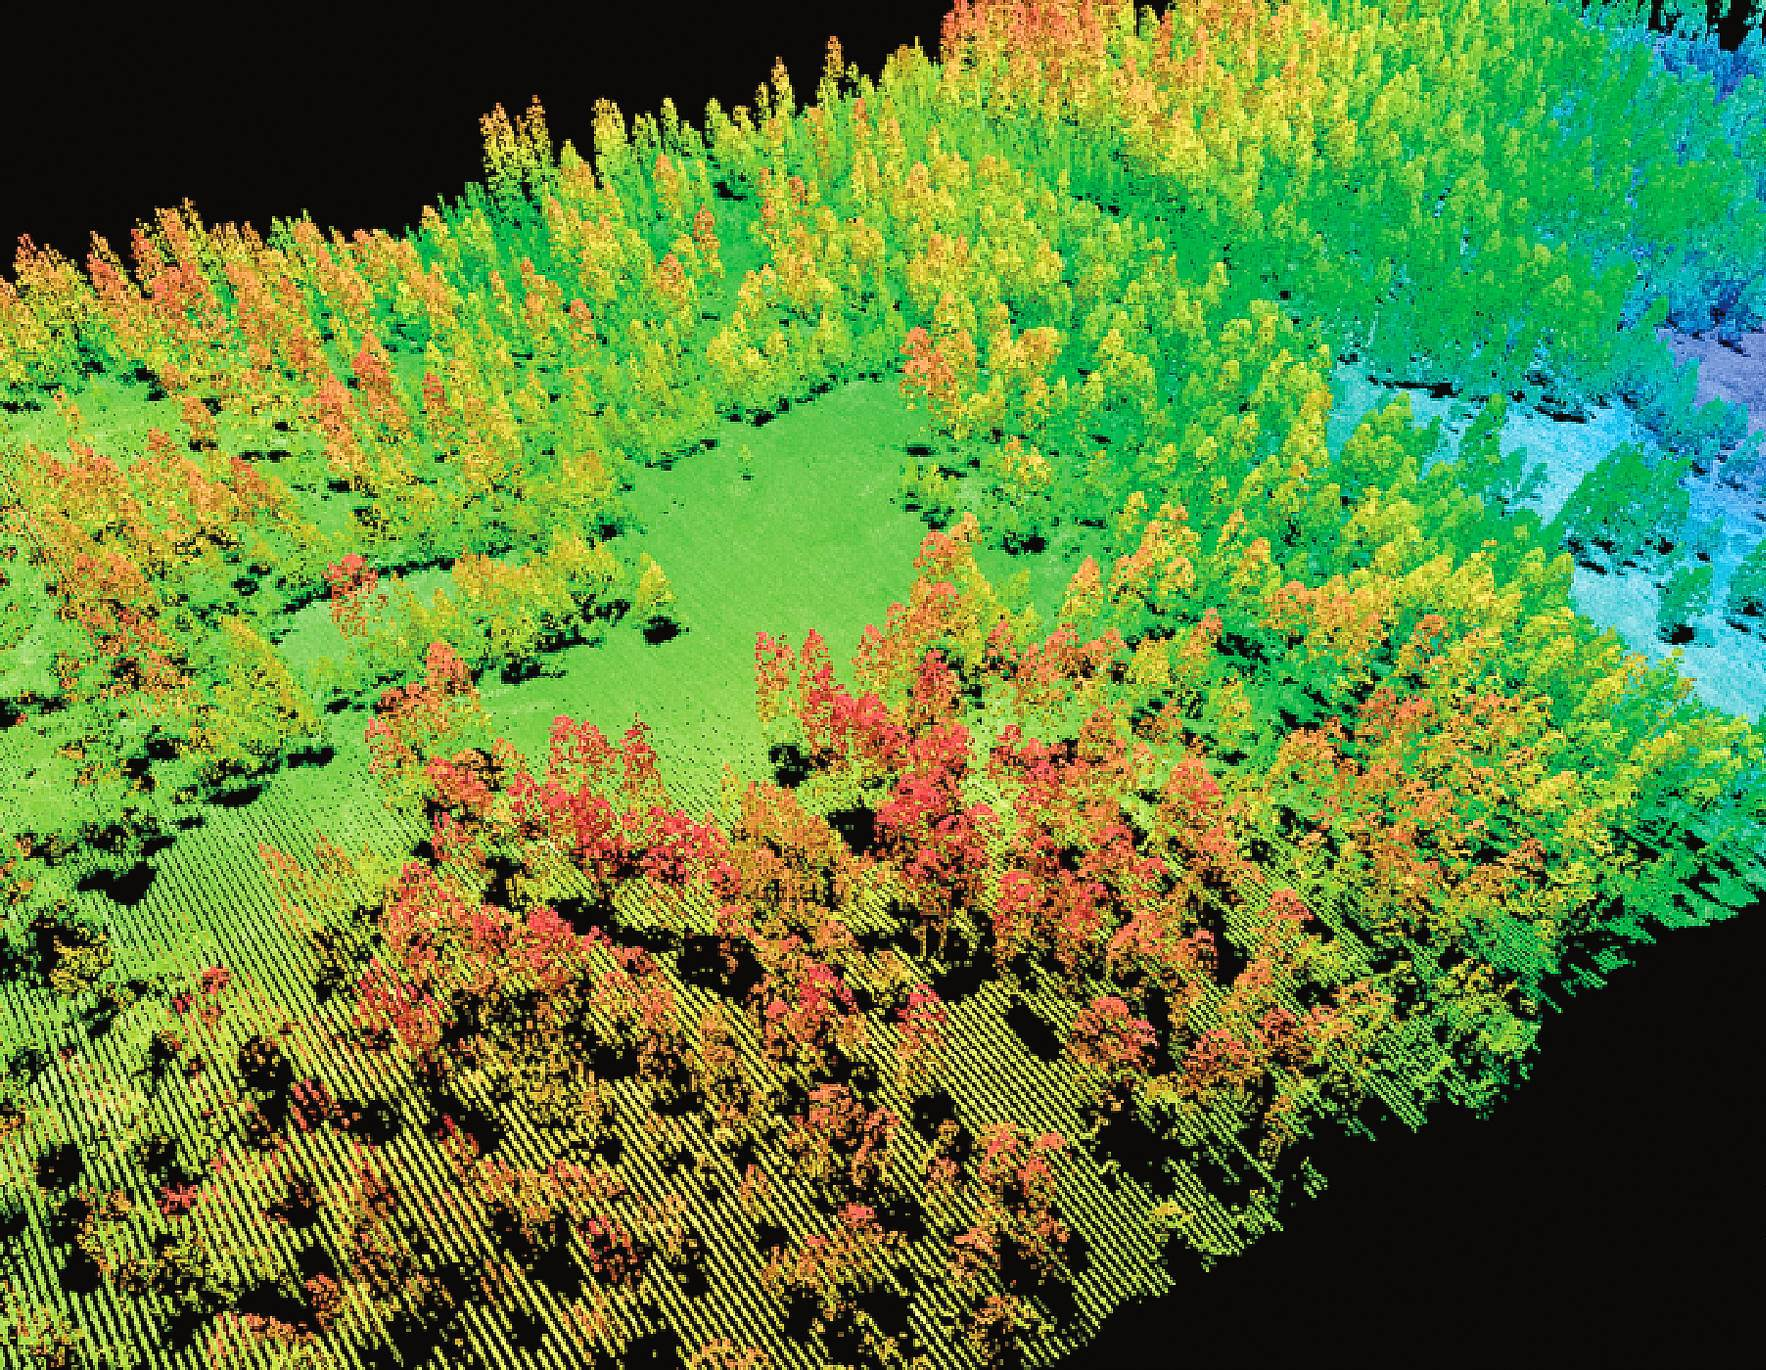 Researchers at the University of Exeter are using an airborne laser scanning technique to create detailed 3D maps that reveal the complex structures of vegetation from the tops of trees down to the ground. Image Courtsey: Sierra Nevada Adaptive Management Project